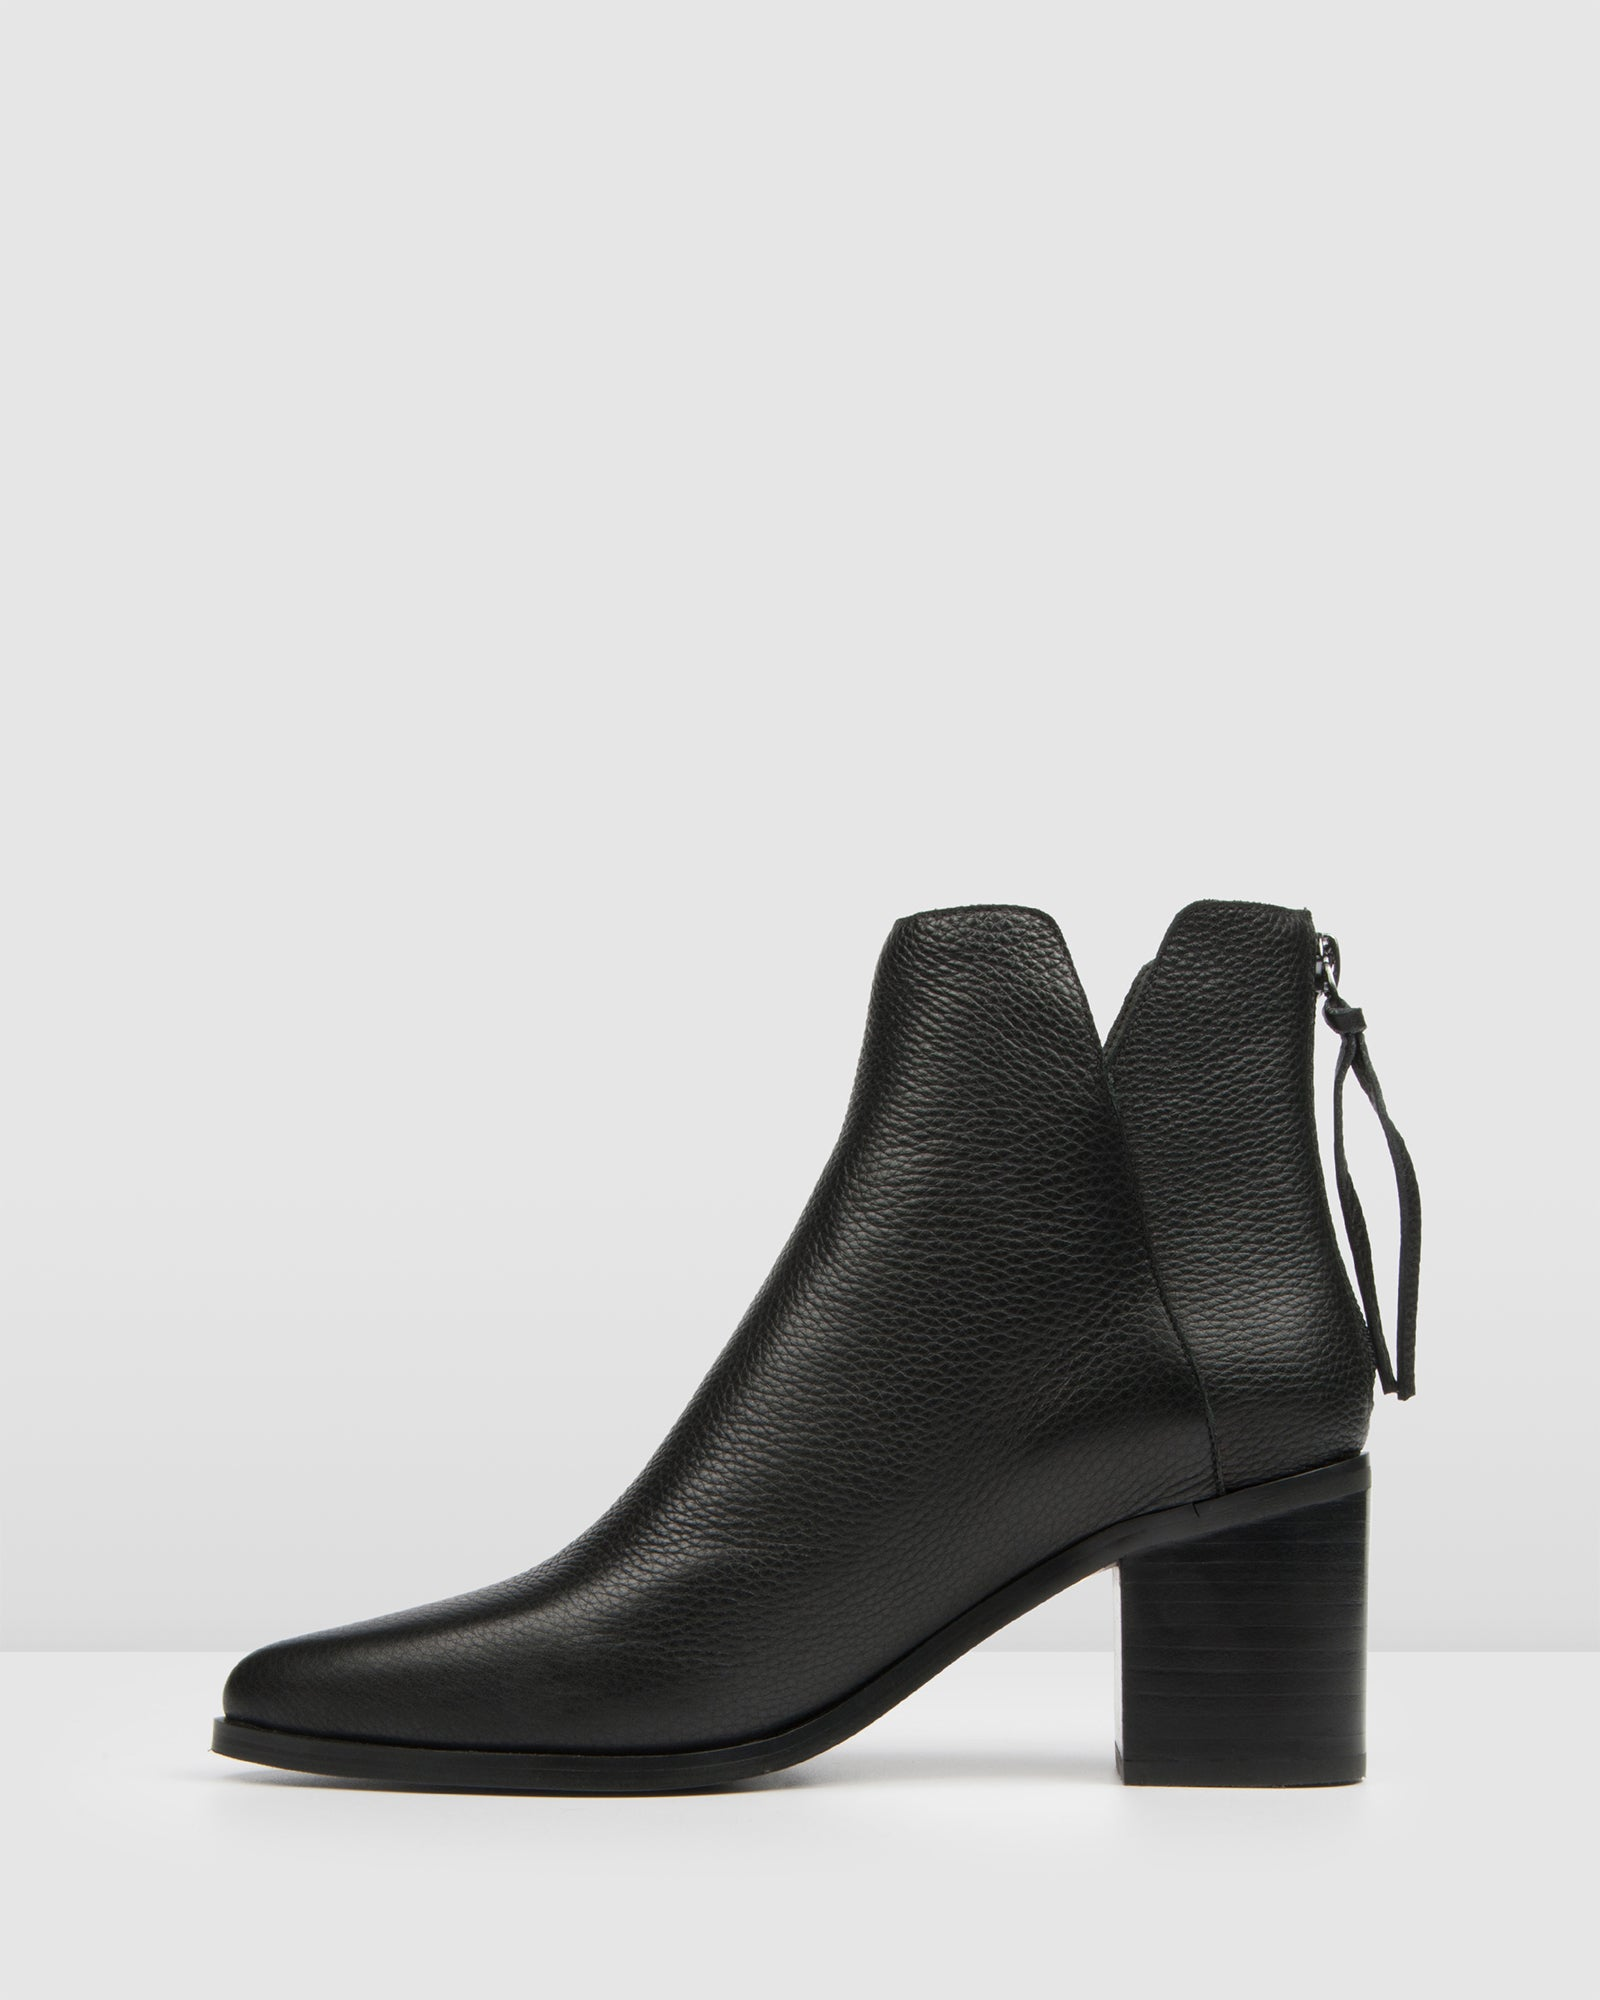 ARENA MID ANKLE BOOTS BLACK LEATHER